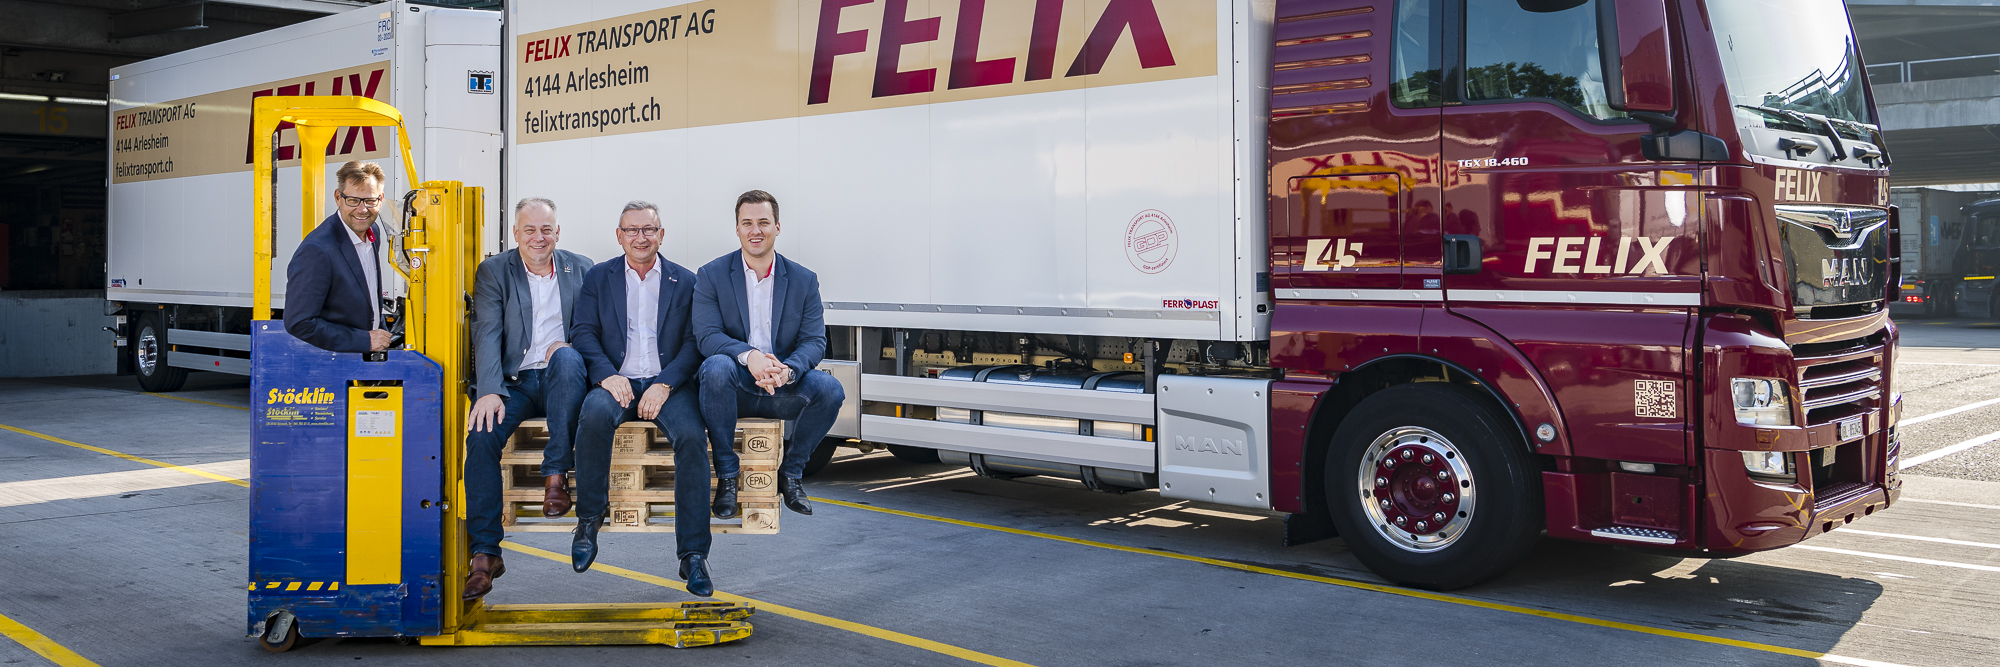 Felix Transport AG 20190716 CJP7752 Web